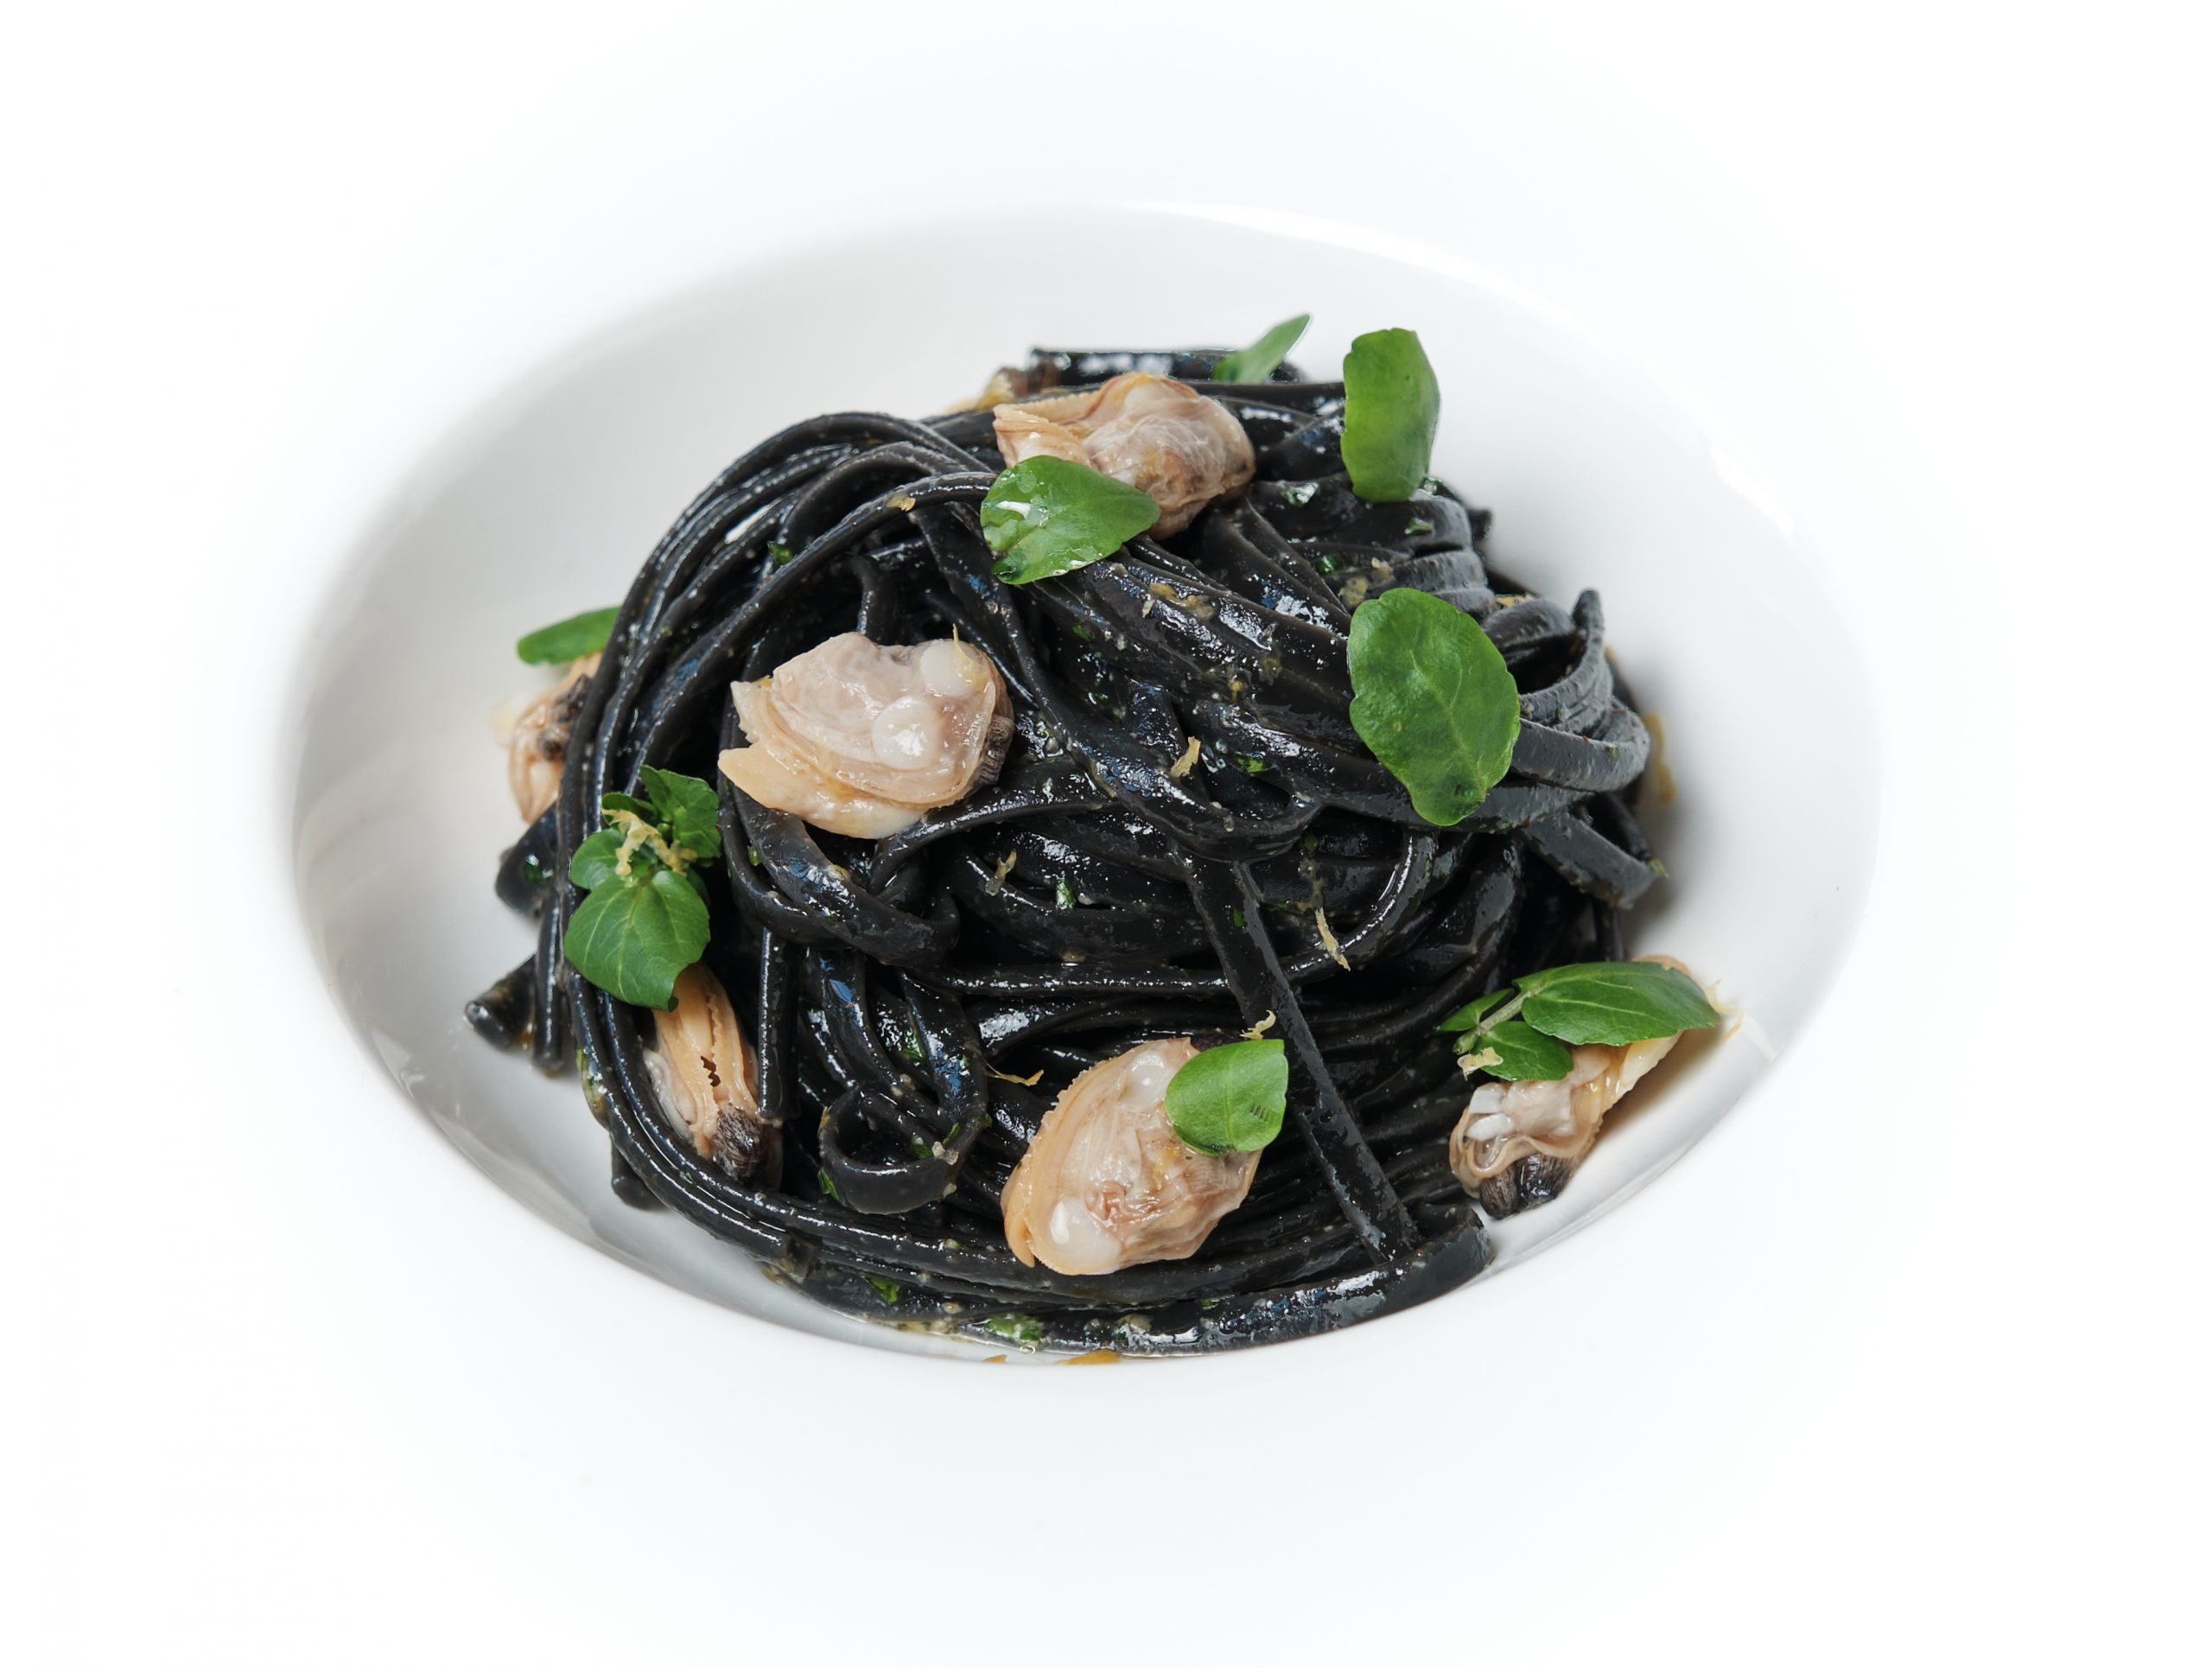 Squid Ink Spaghetti with Clams and Lemon Sauce